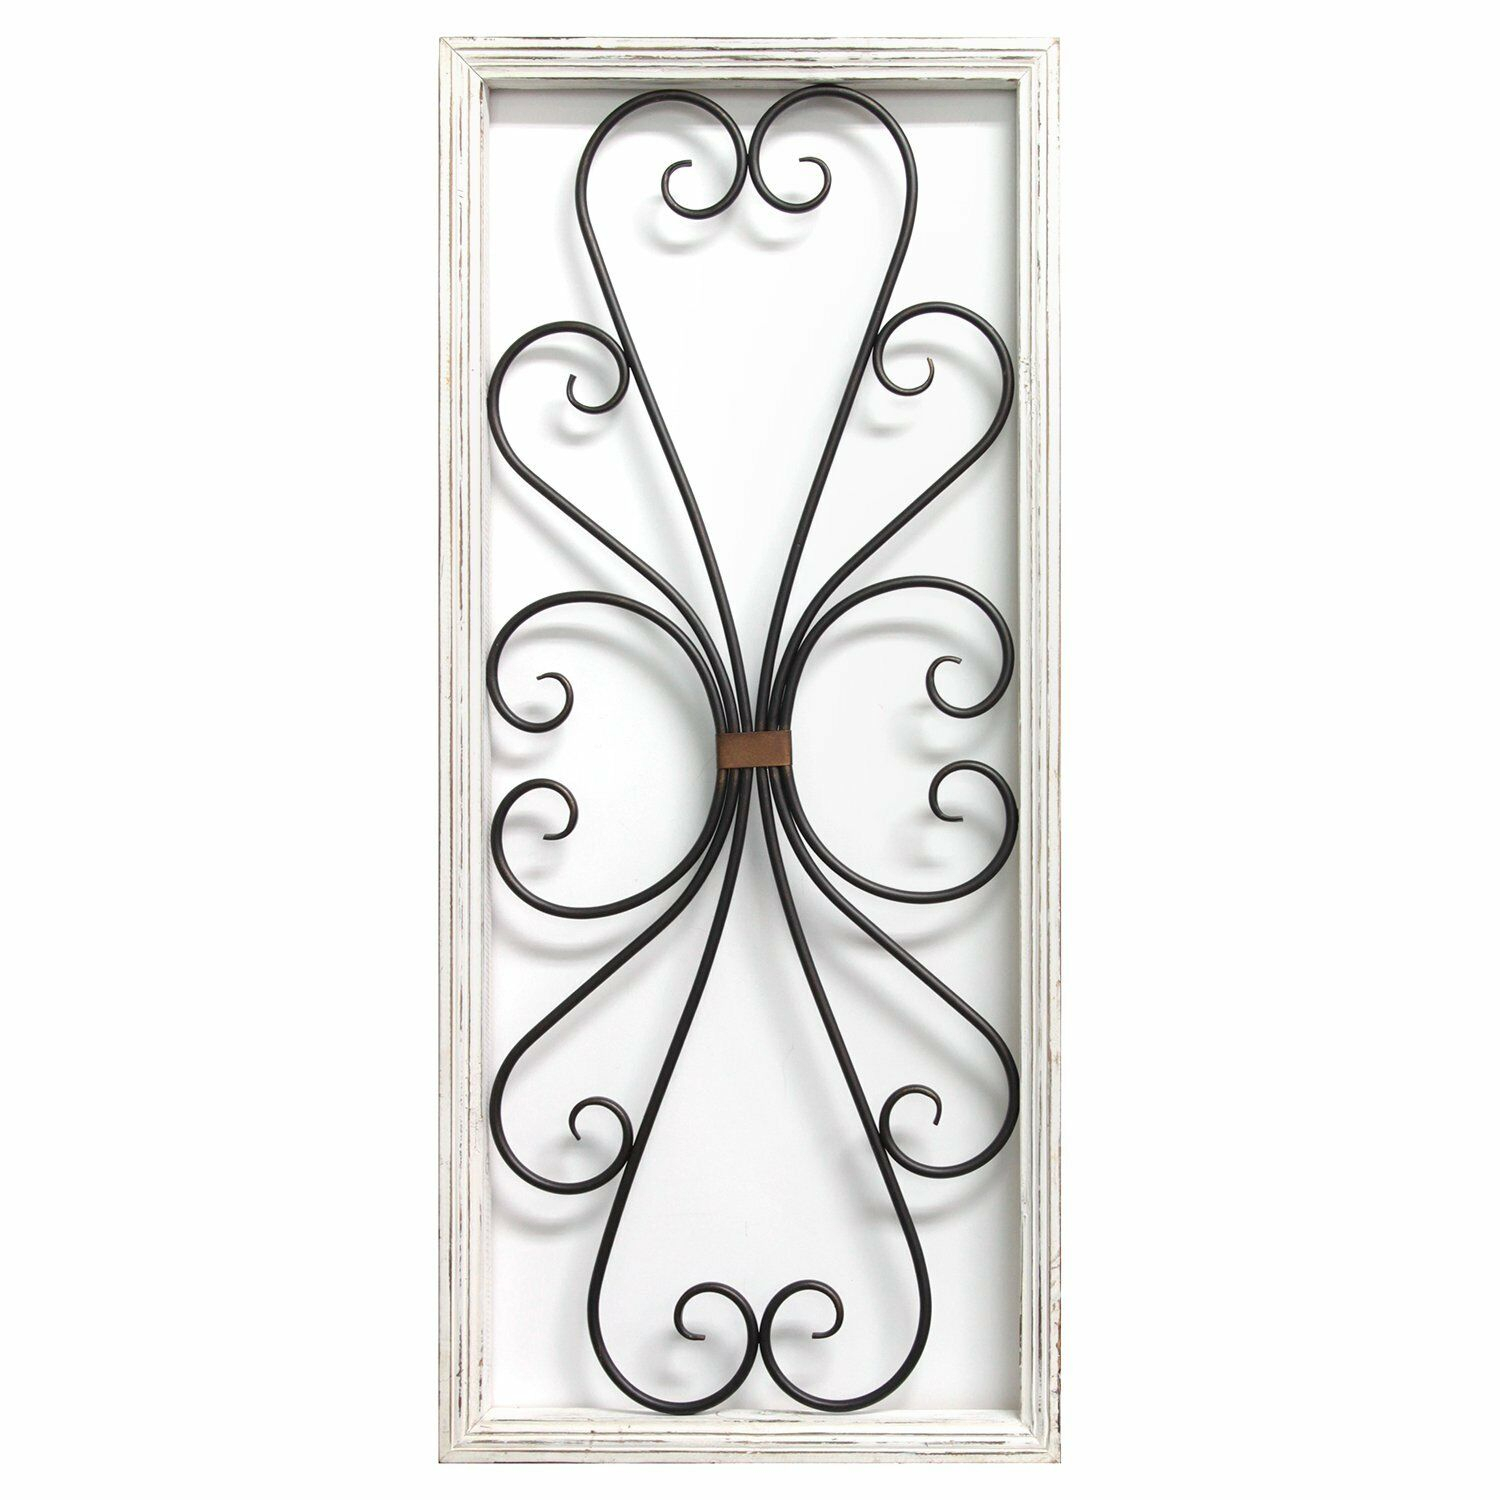 Details About White And Black Scroll Panel Hanging Interior Wall Art Home  Decor Intended For Scroll Panel Wall Decor (Photo 7 of 30)